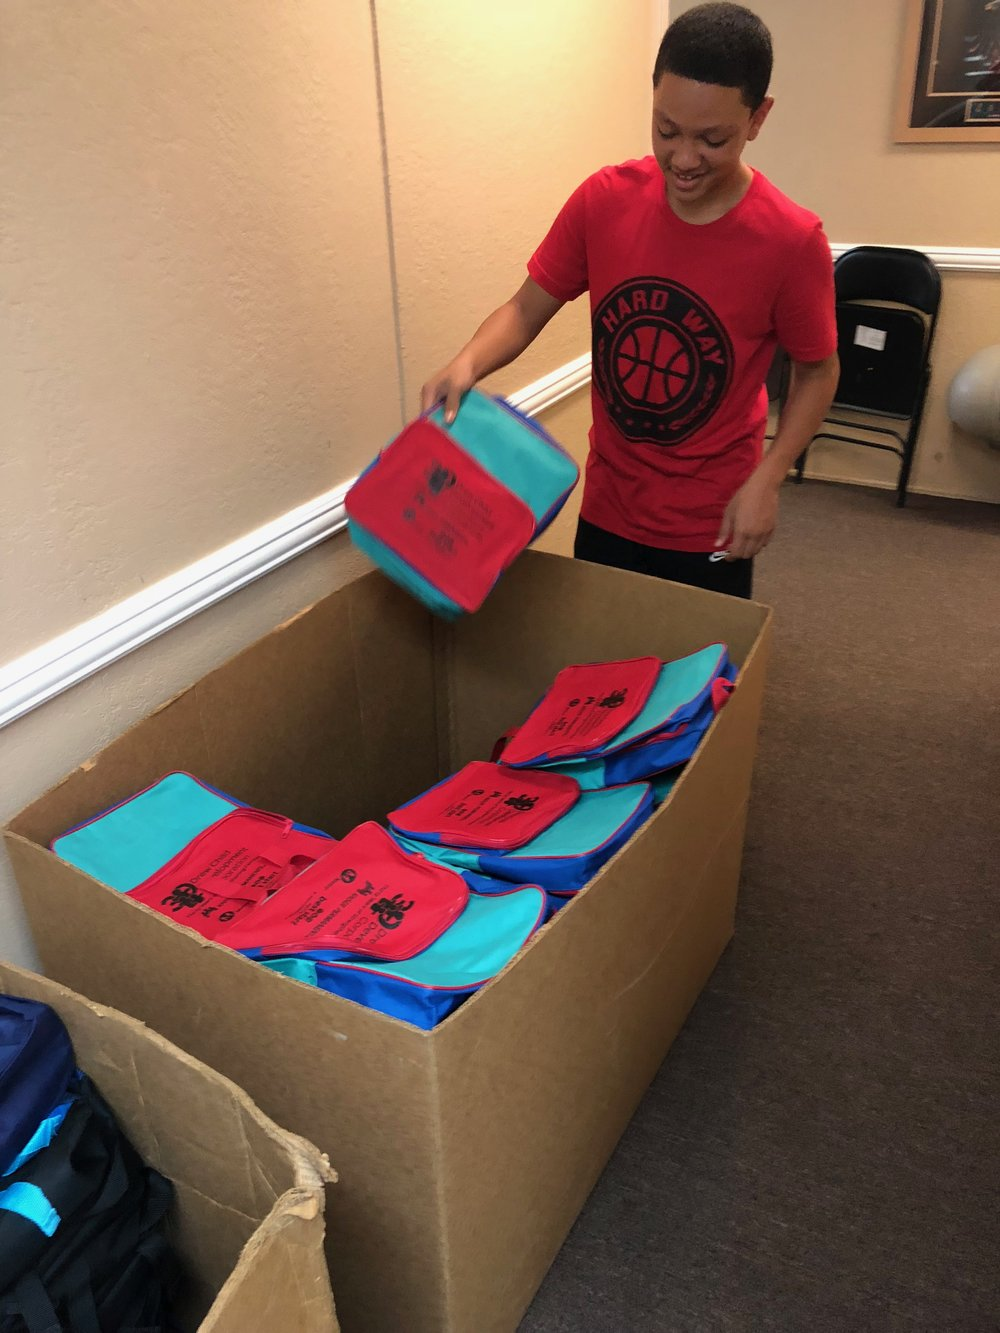 Knit caps (beenies), scarves, gloves, and socks are bagged on their way to local shelters to be distributed to people in need. Our participants are involved in the process from start to finish.